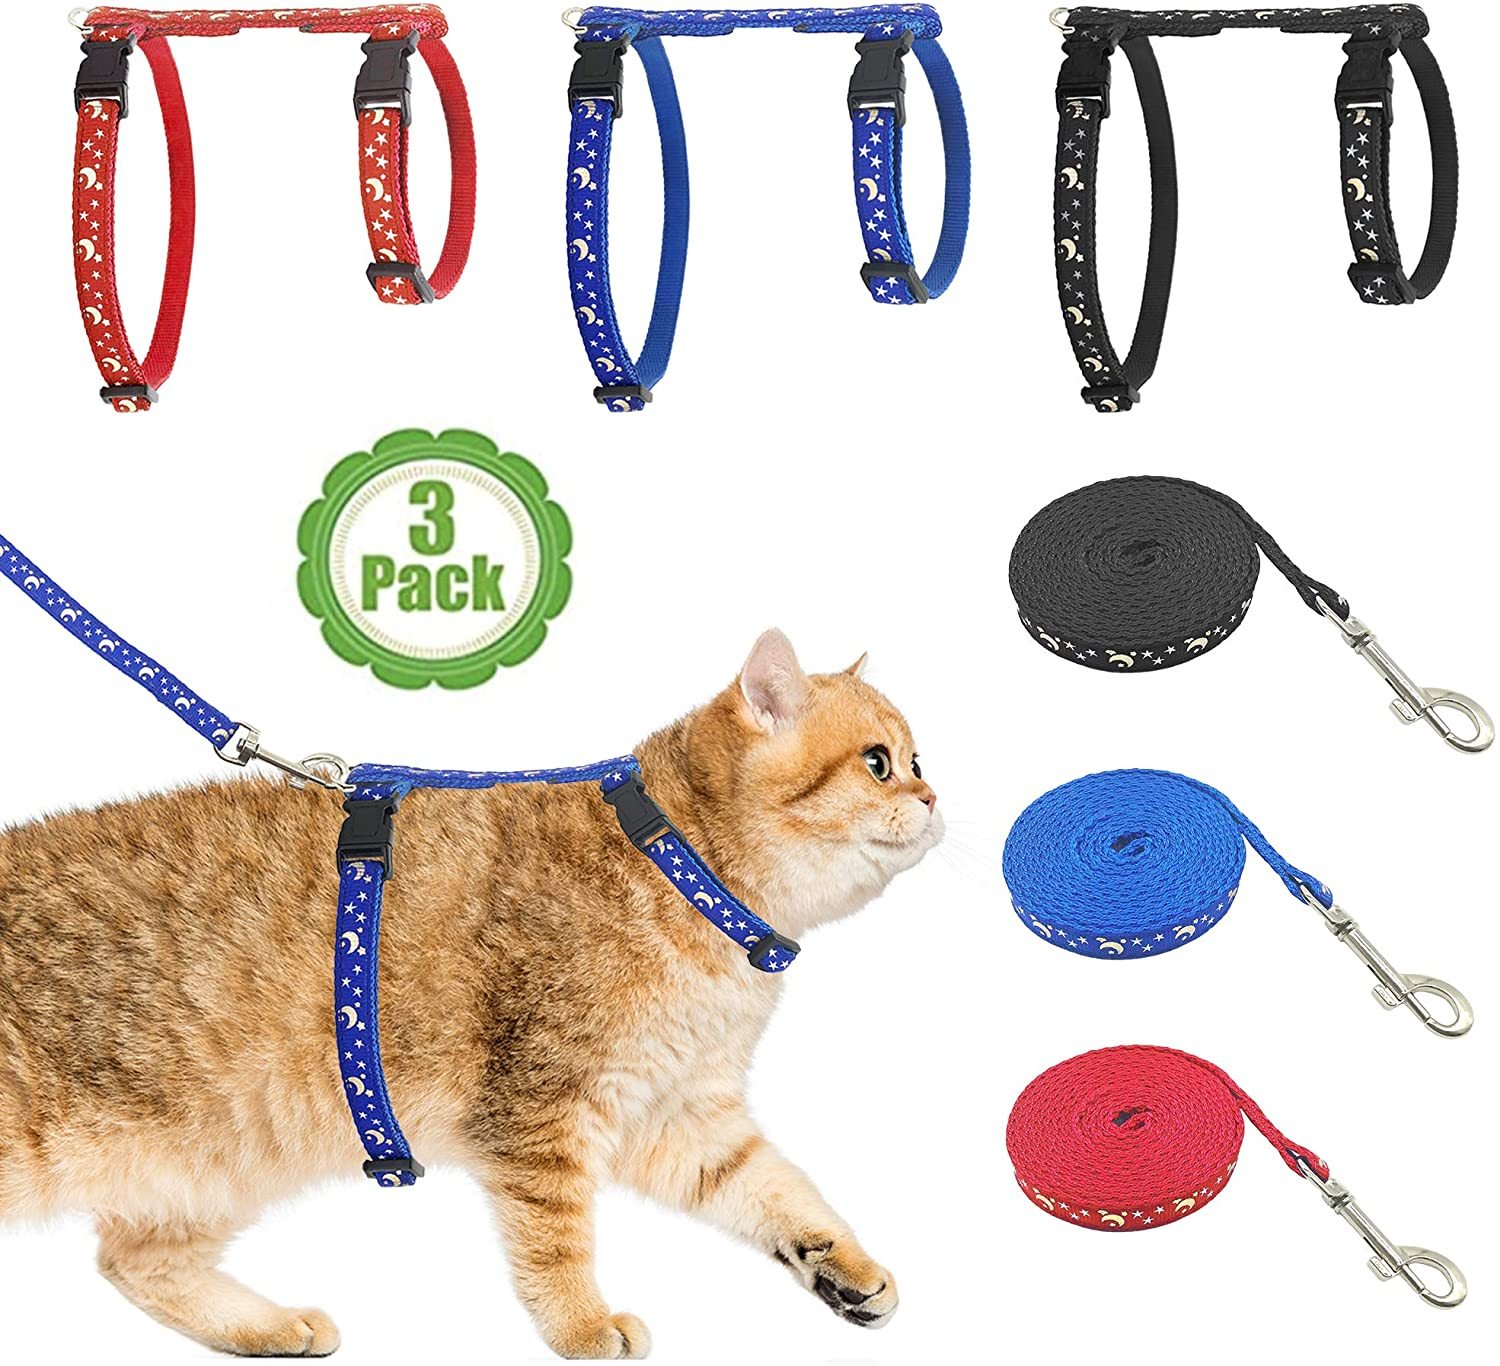 Bemix Pets Cat Harness with Leash, 3-Pack, Unique Stars and Moon Design, Escape Proof, Walking, Small Medium Large, Black, Red, Blue, Adjustable, Safe